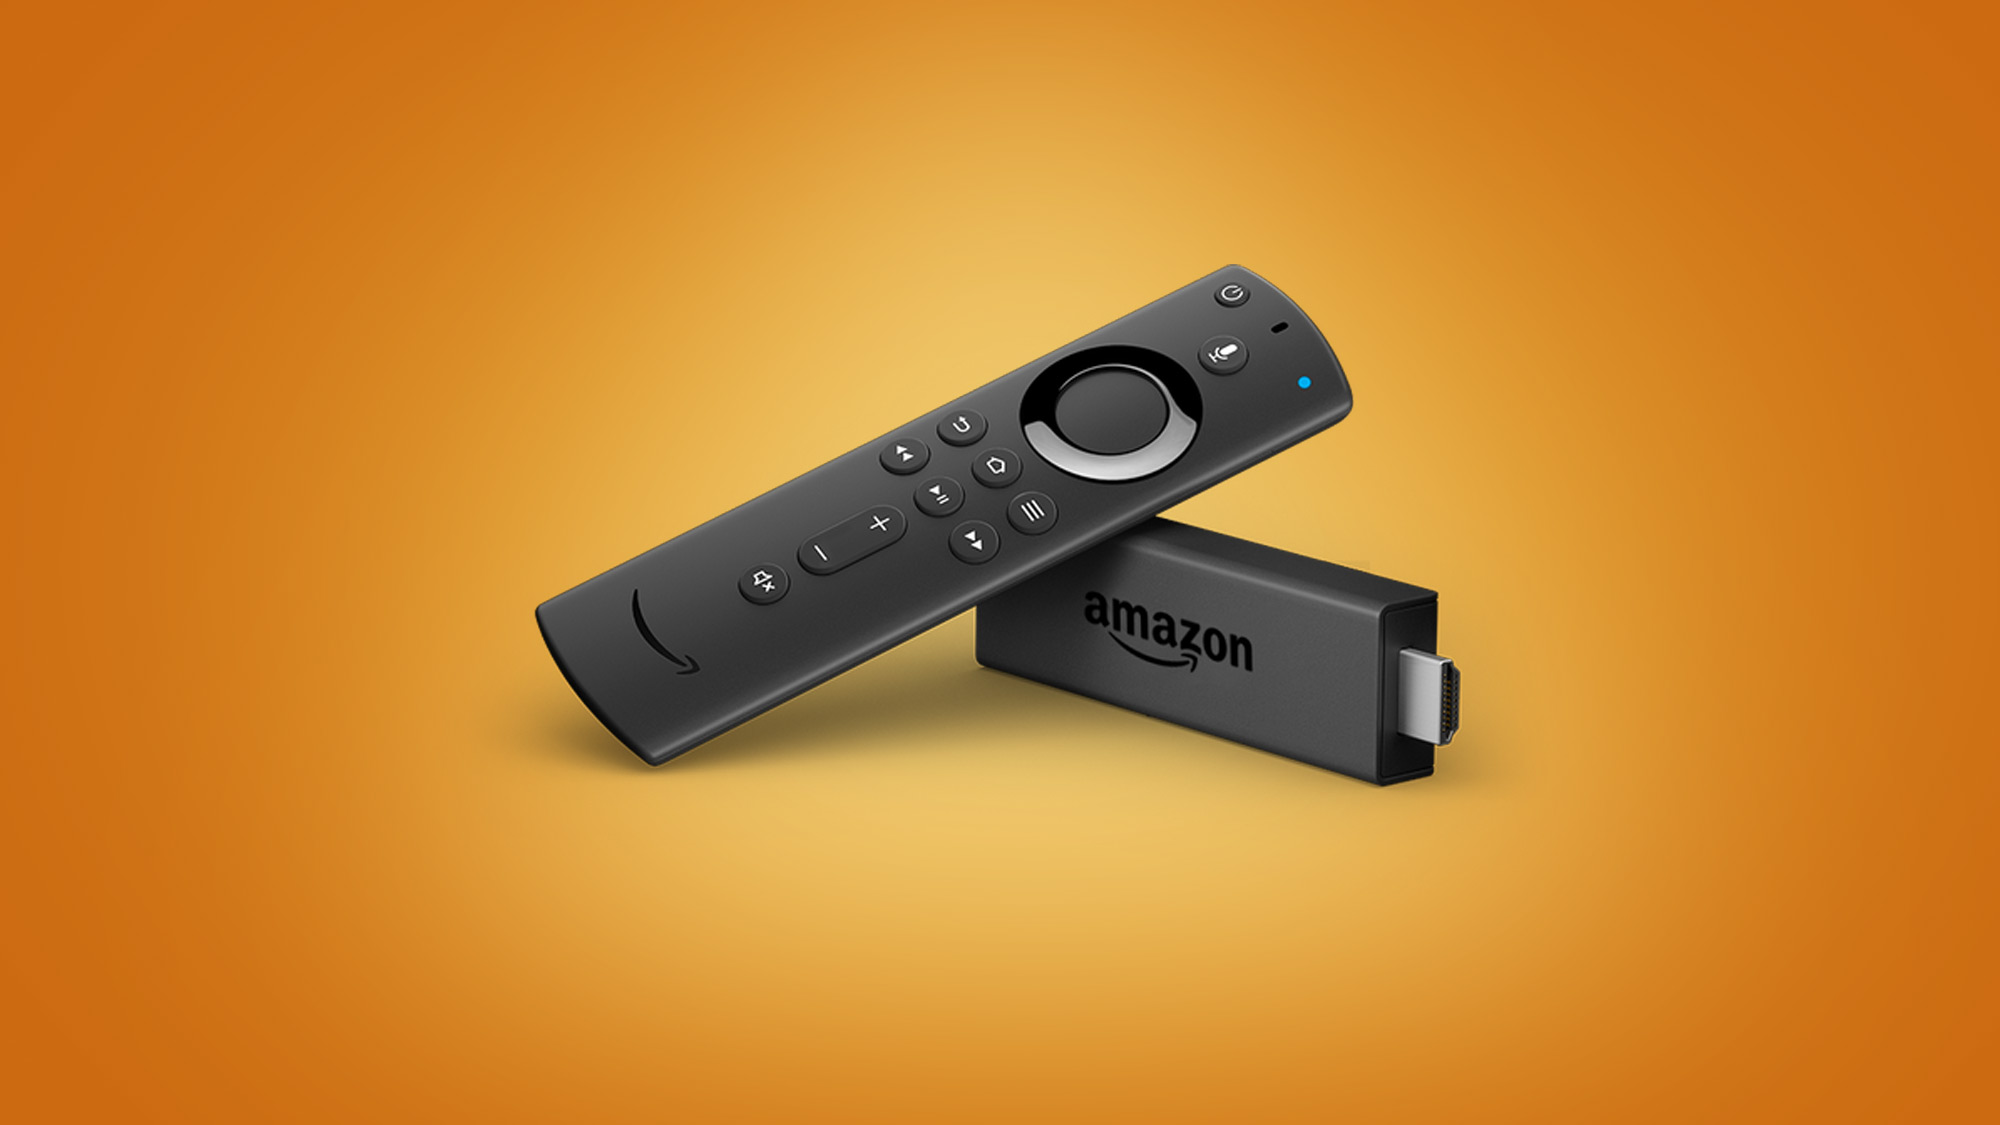 The Best Cheap Amazon Fire Stick Prices And Deals For Black Friday And Cyber Monday 2020 Techradar